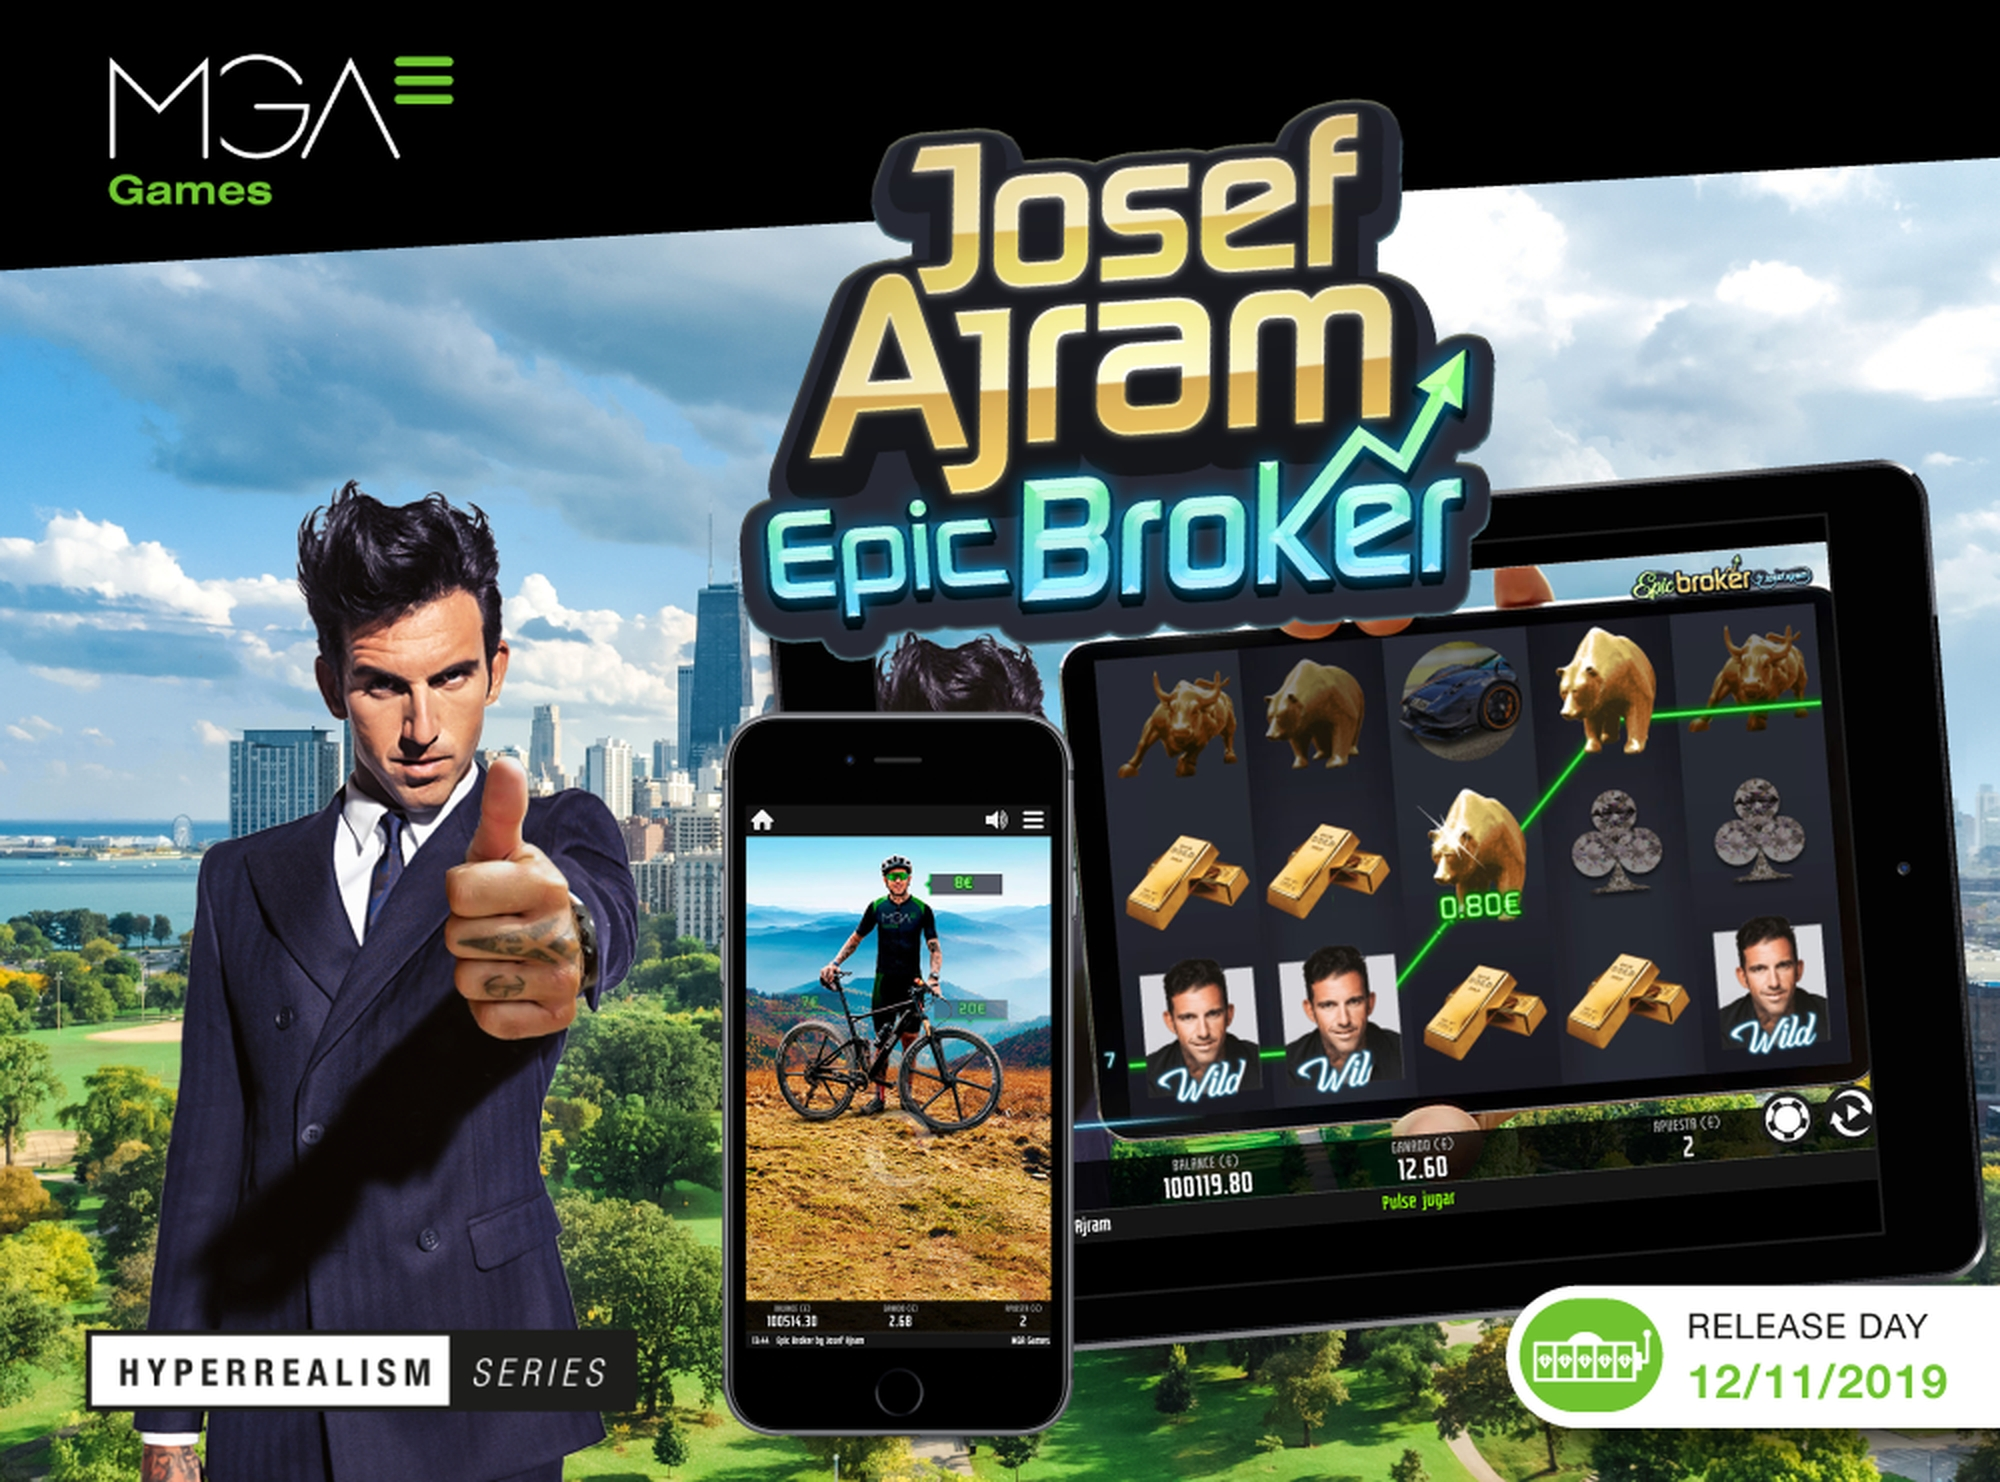 Se Josef Ajram Epic Broker Online Slot Demo Game, MGA